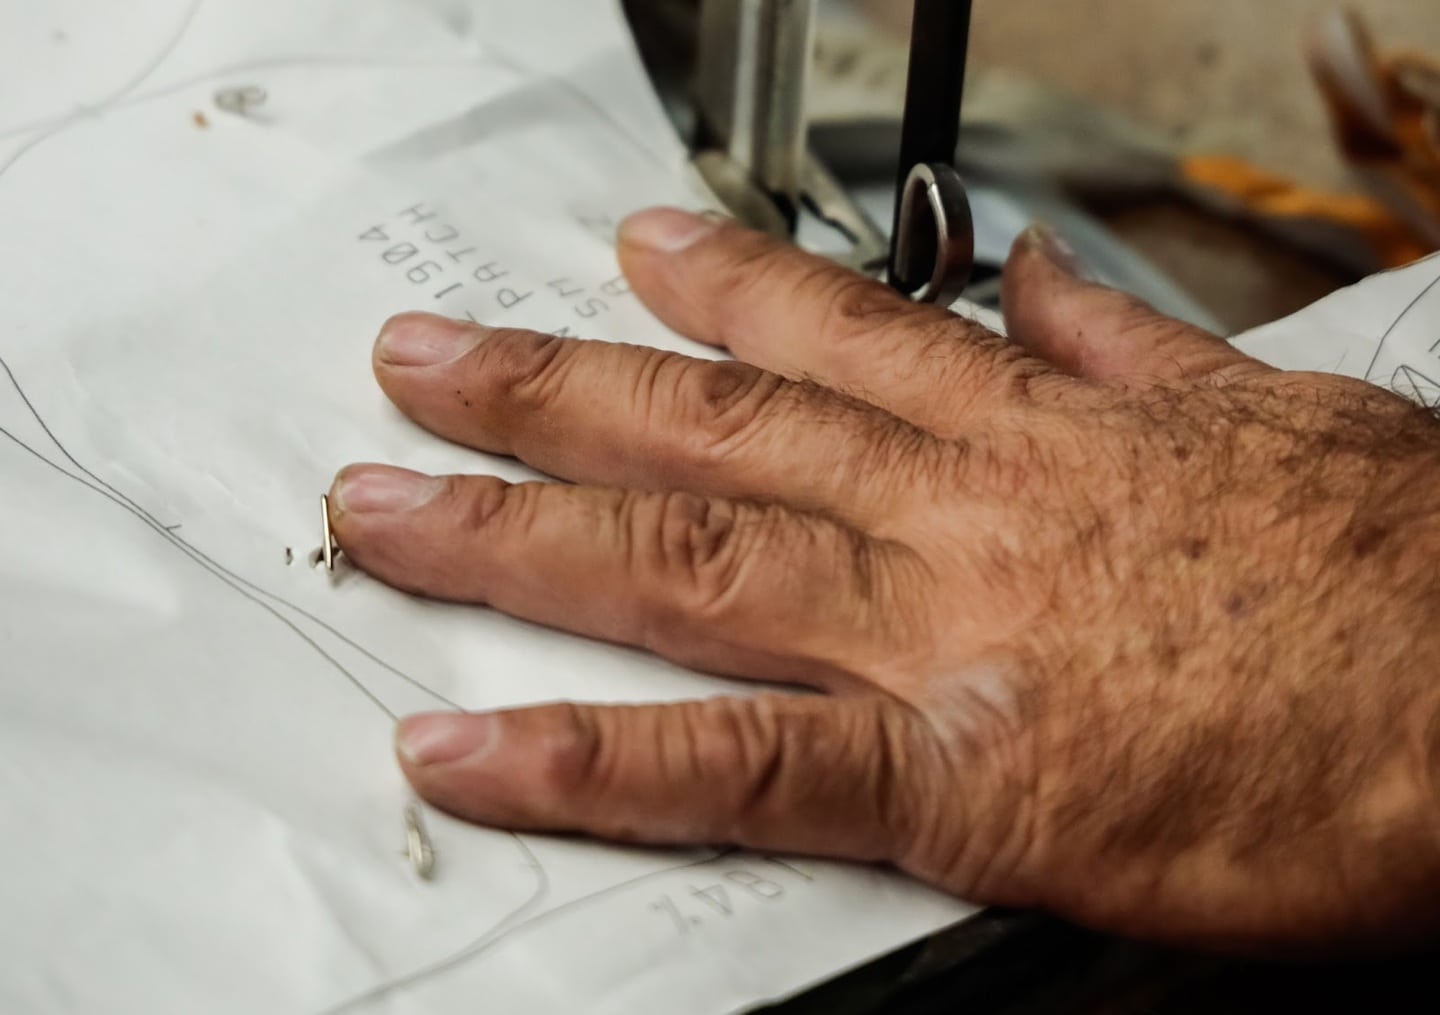 Closeup of Los Angeles clothing manufacturer's hand sewing fabric